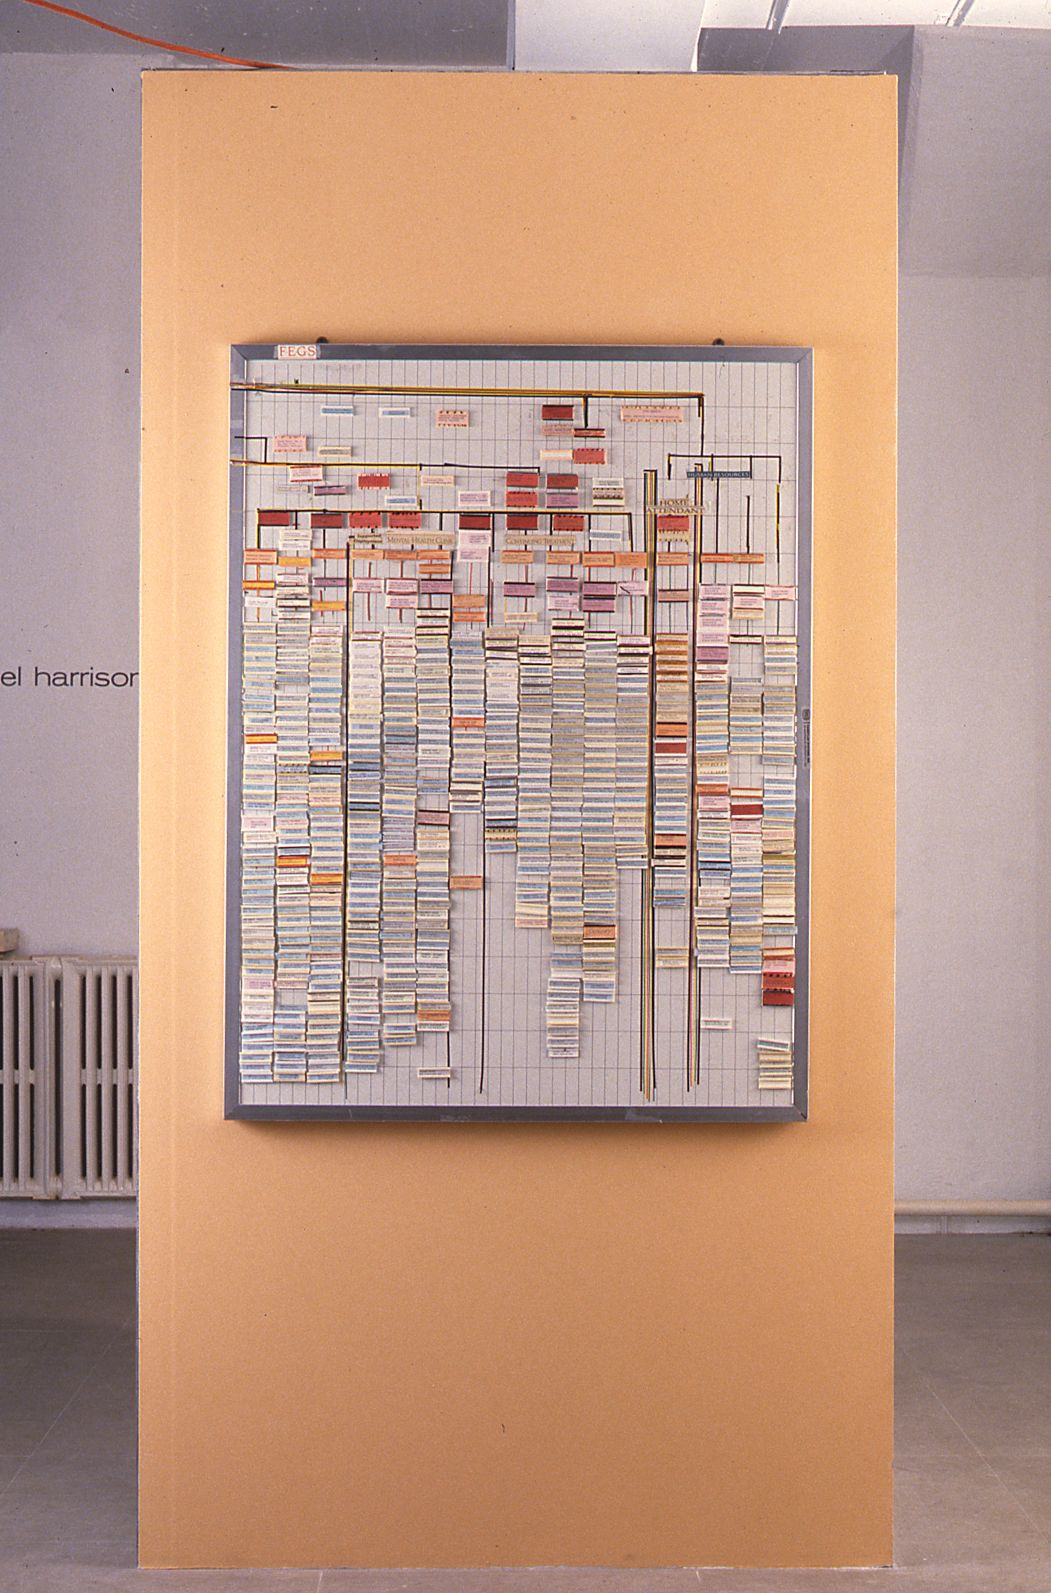 Fegs, 1997, mixed media installation, 48 x 48 x 96 inches